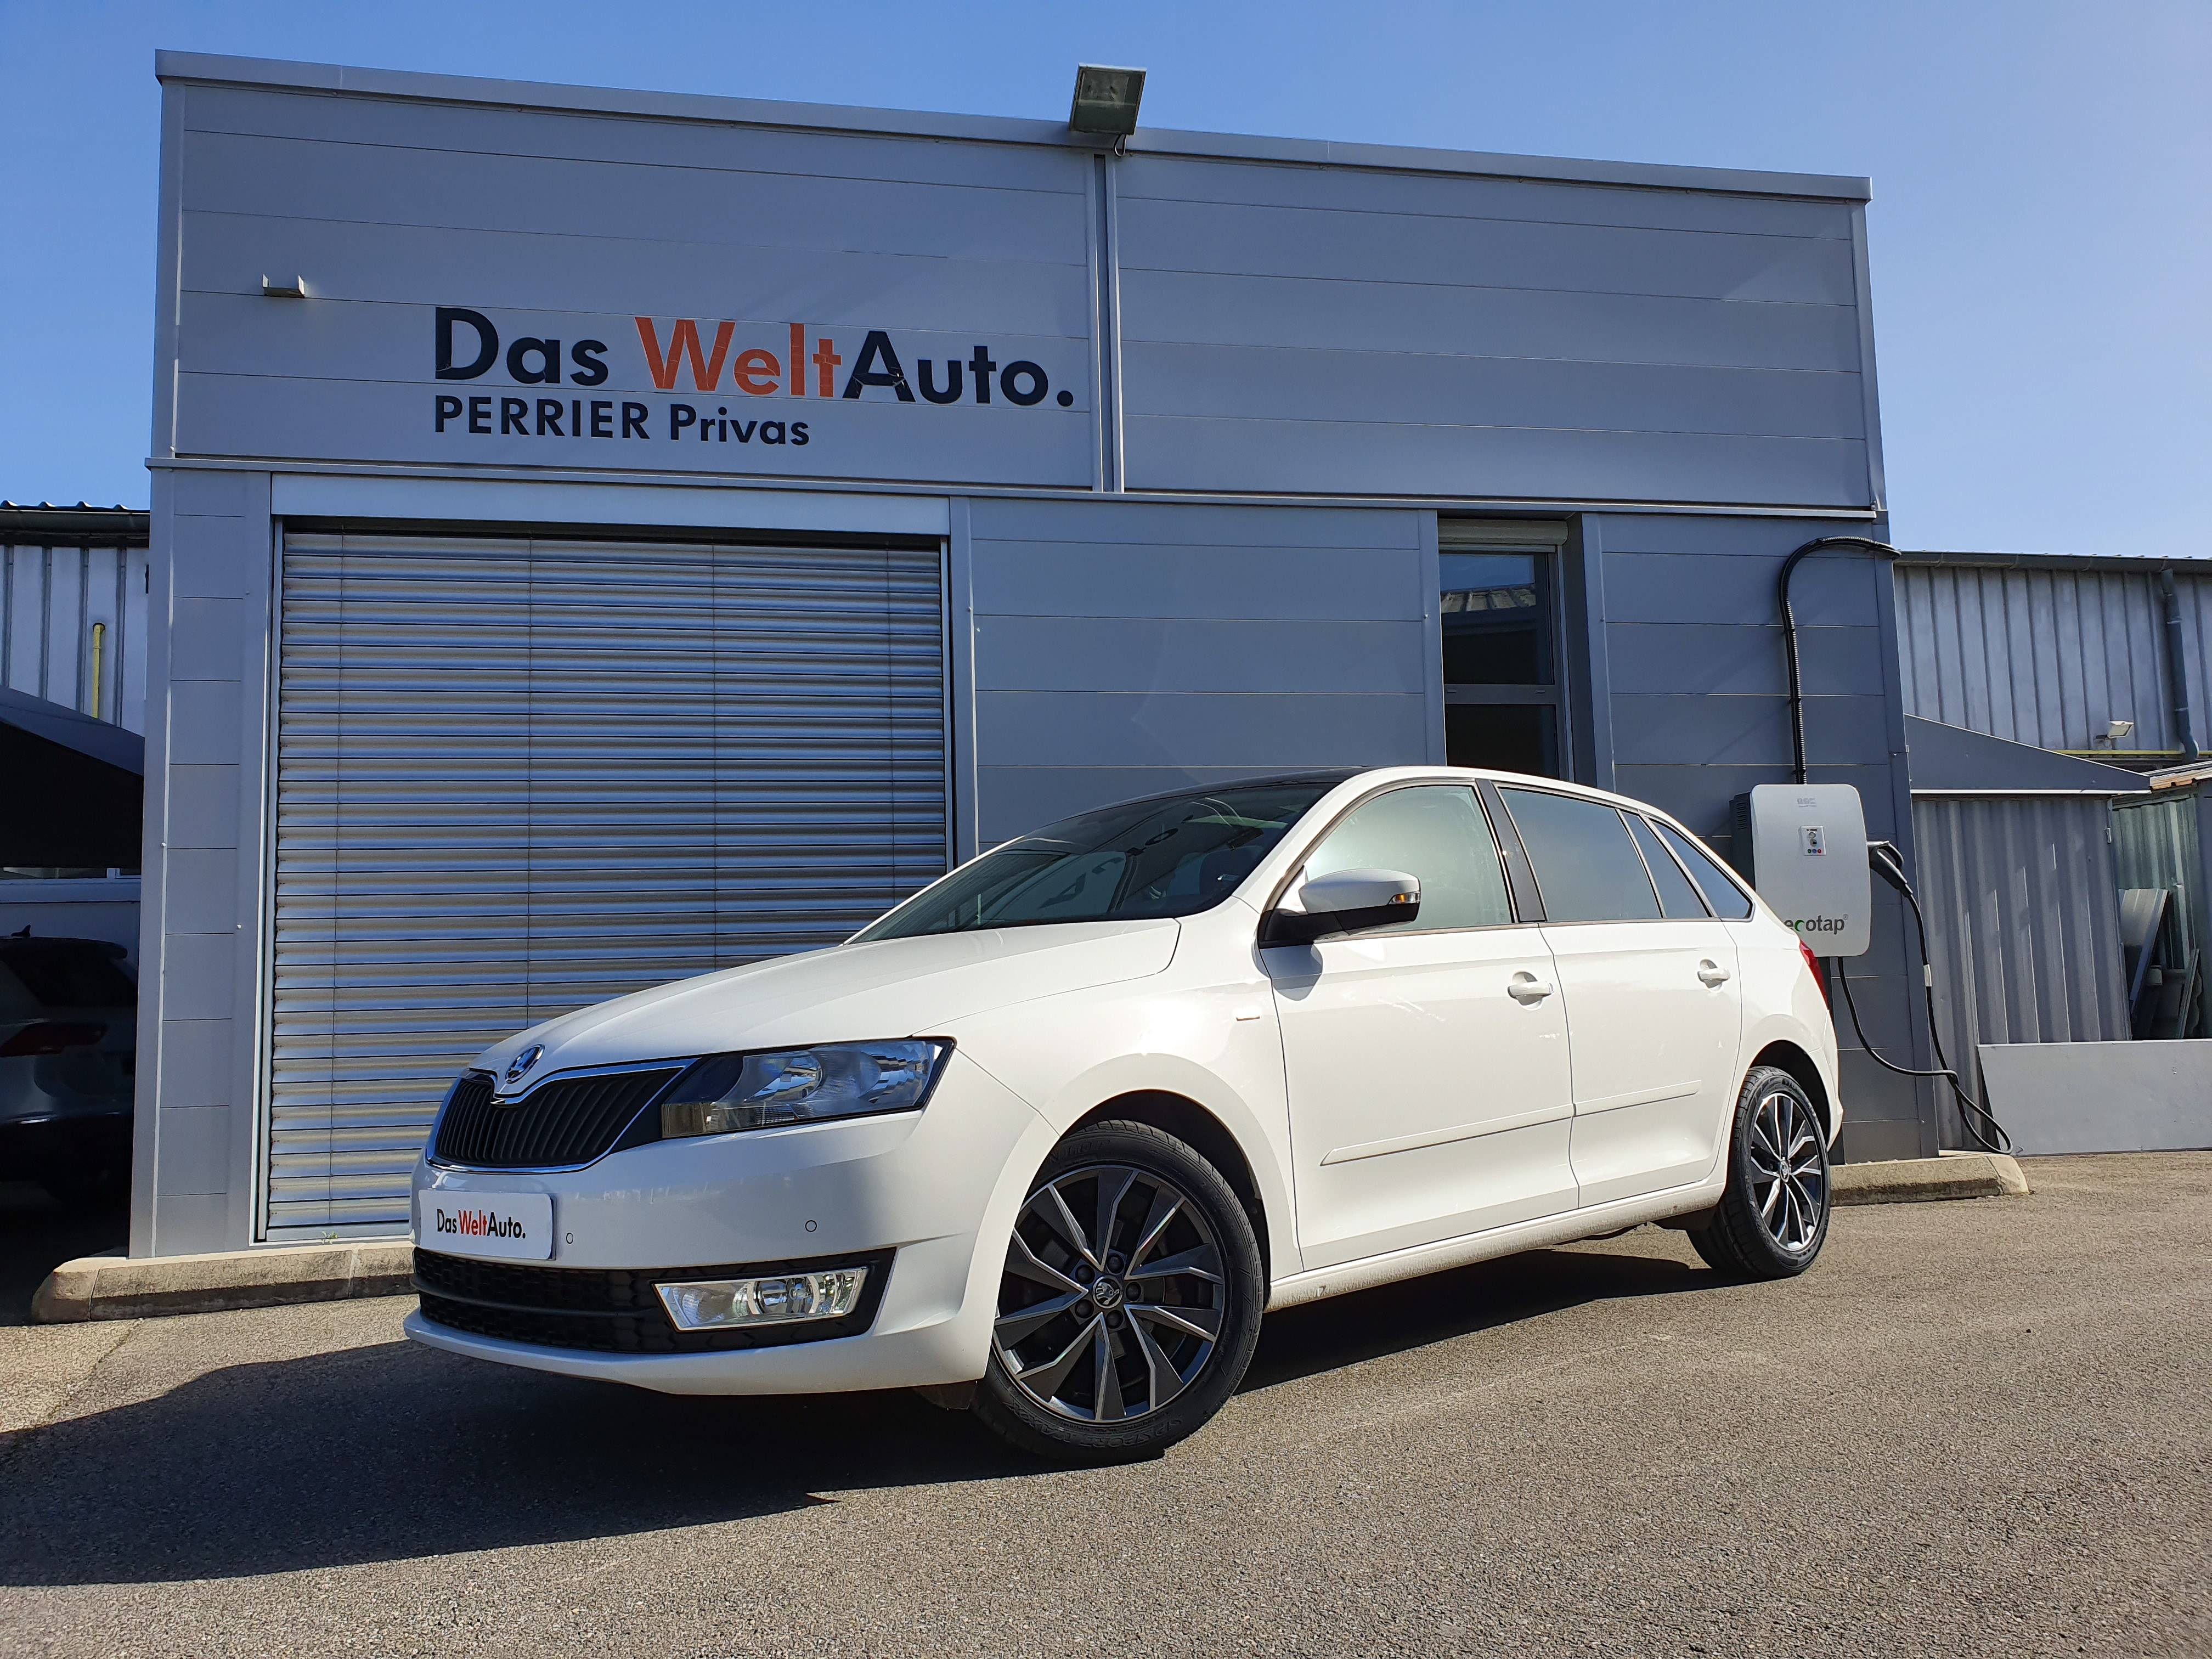 Occasion SKODA Rapid Spaceback 1.4 TDI 90 ch CR FAP GreenTec DSG7